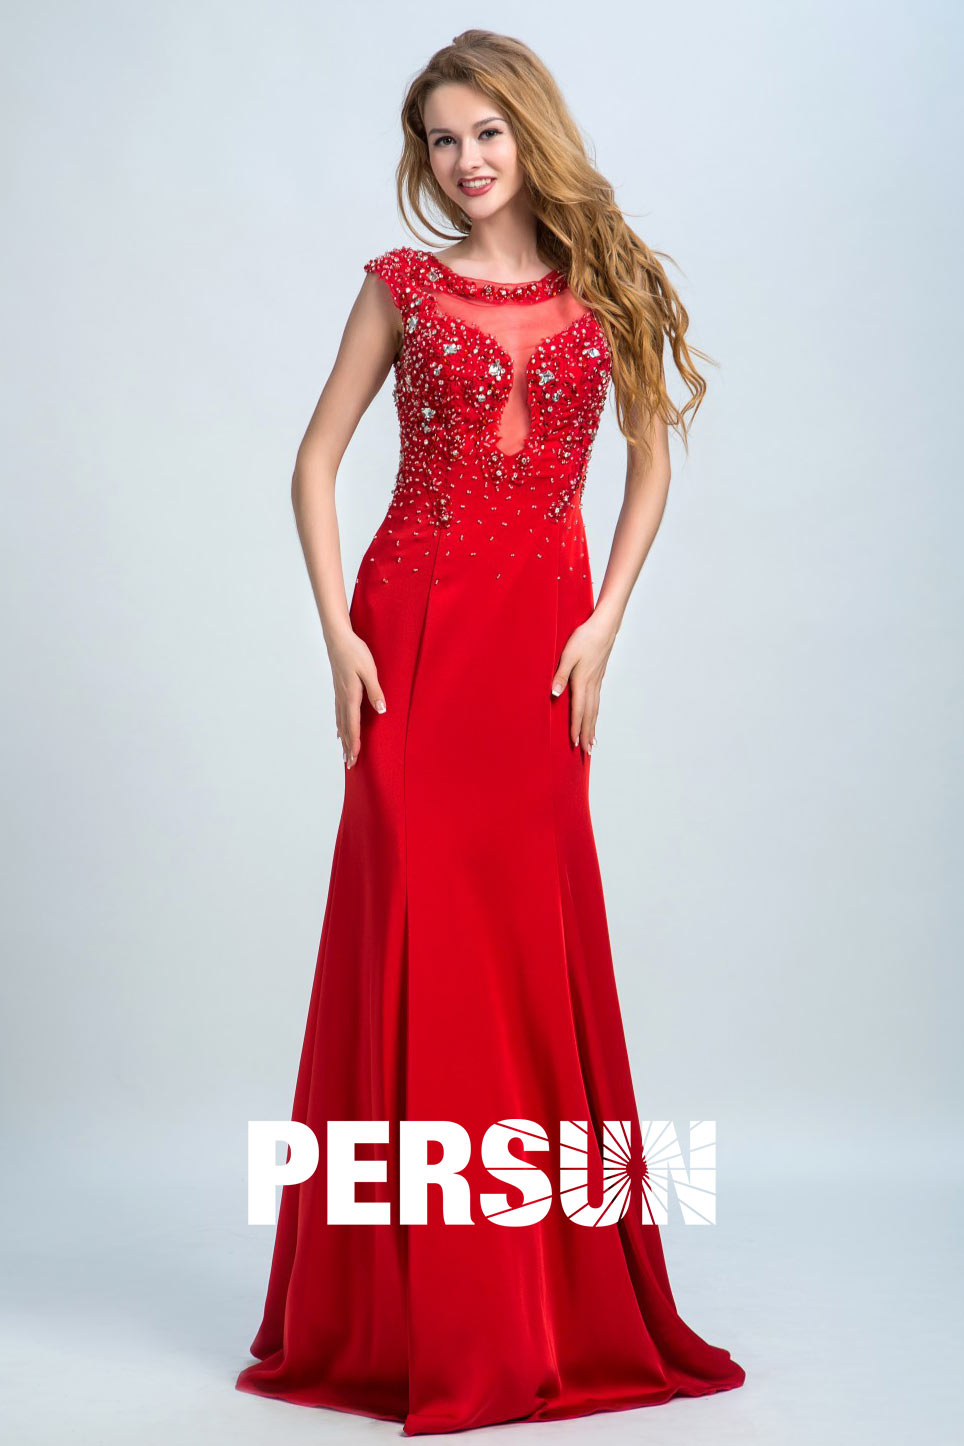 Persun Elegant Sheer Mermaid Long Evening Gown with beading red transparent Christmas Fete party popular dress